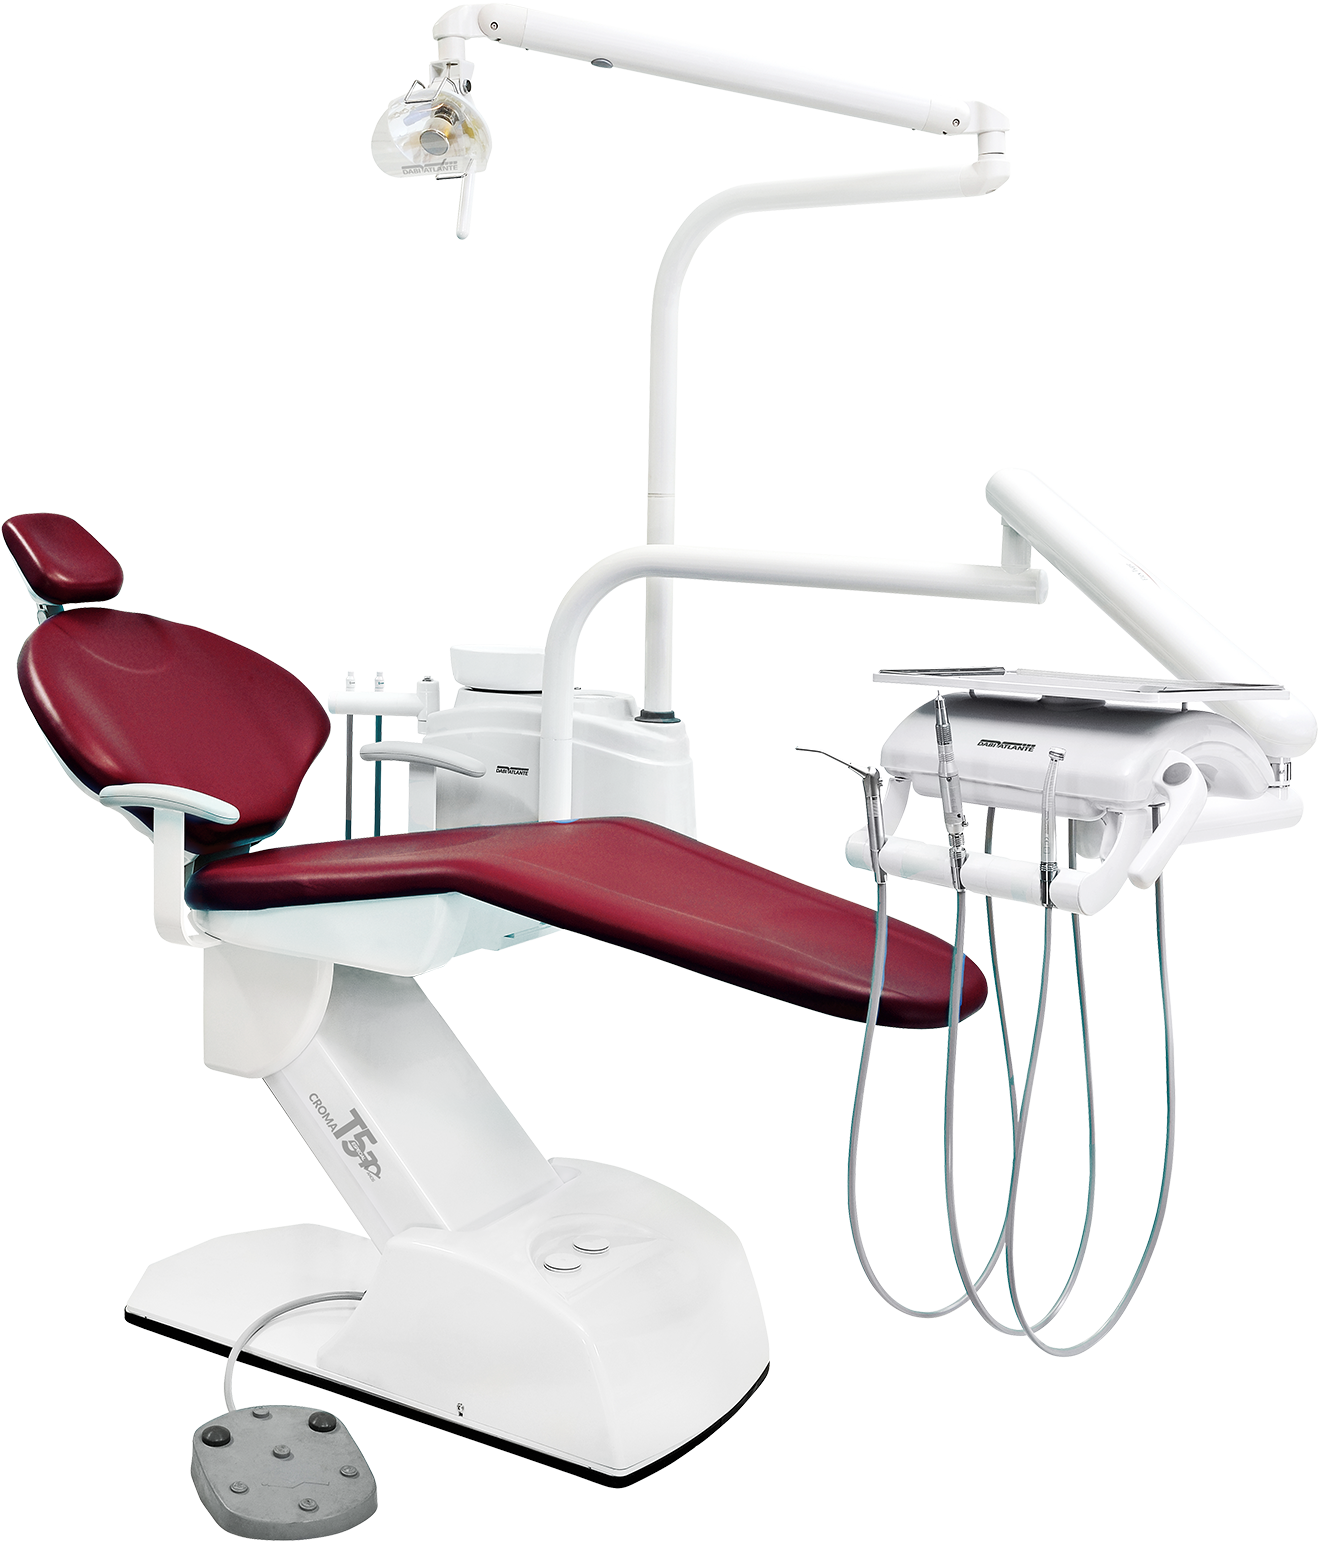 Dental Chairs Mectron Dental India Pvt Ltd Is Having Widest Range Of Dental